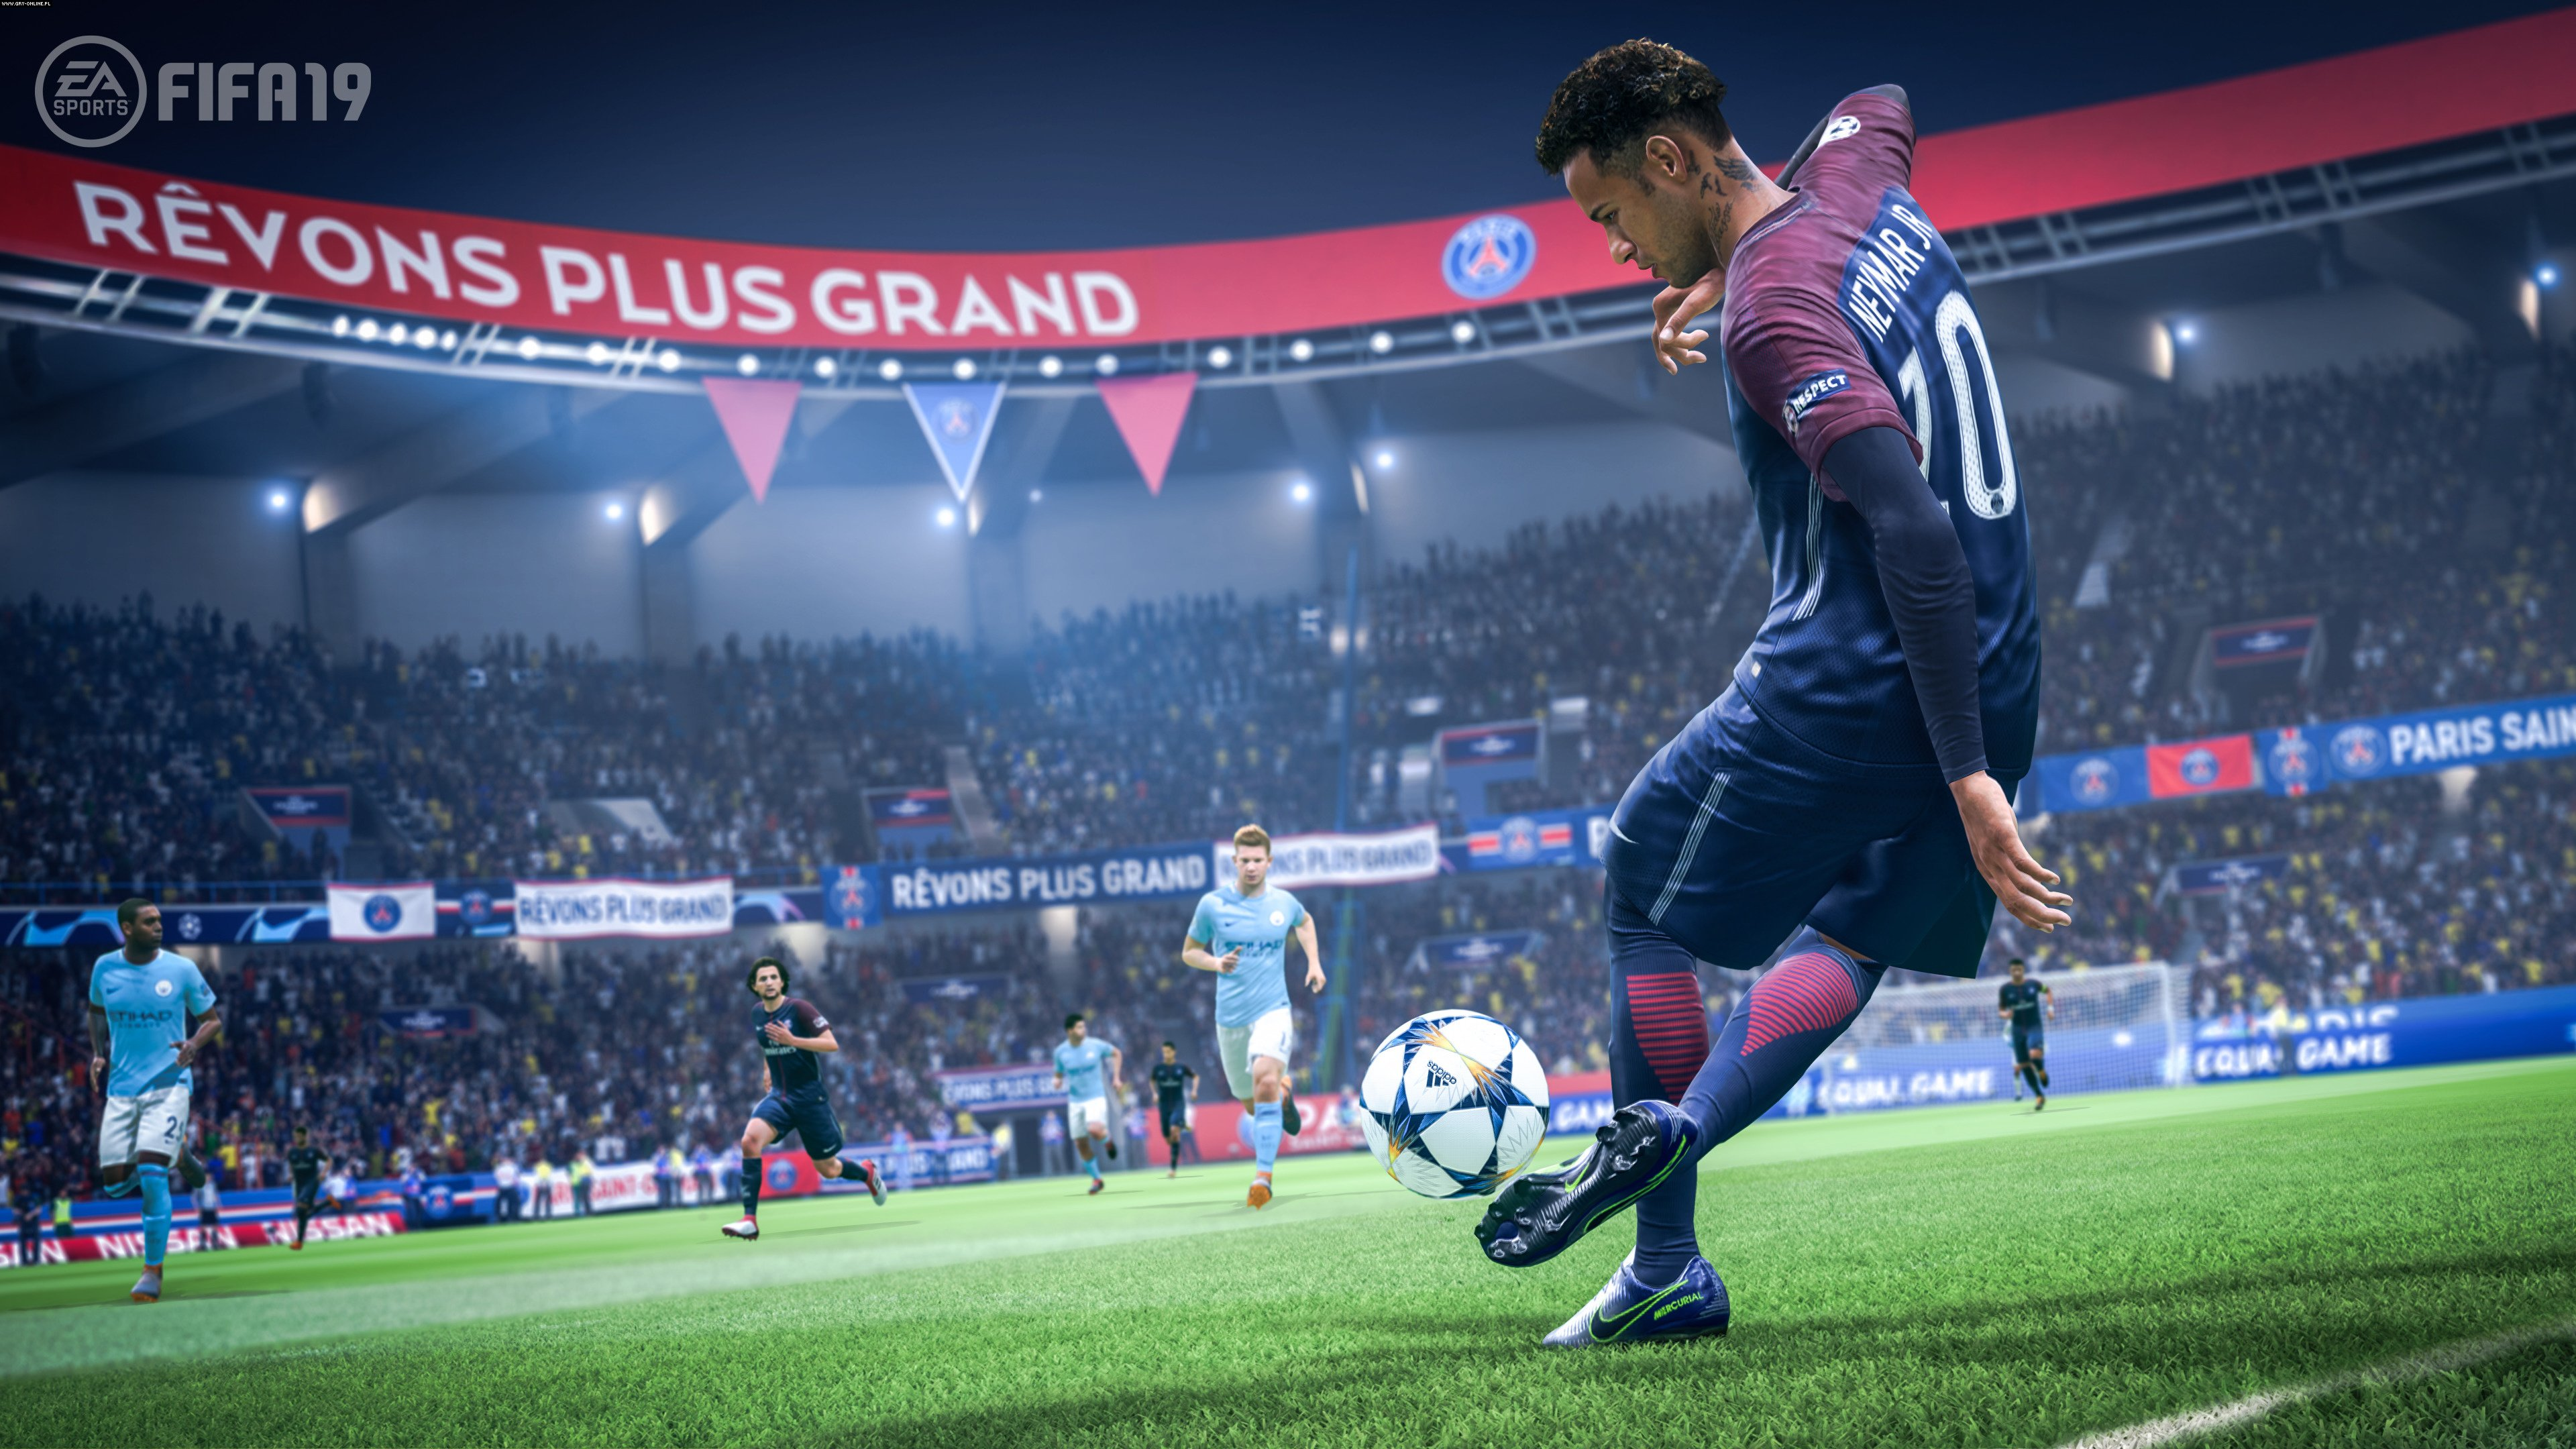 FIFA 19 PC, PS4, XONE, Switch Games Image 4/7, EA Sports, Electronic Arts Inc.